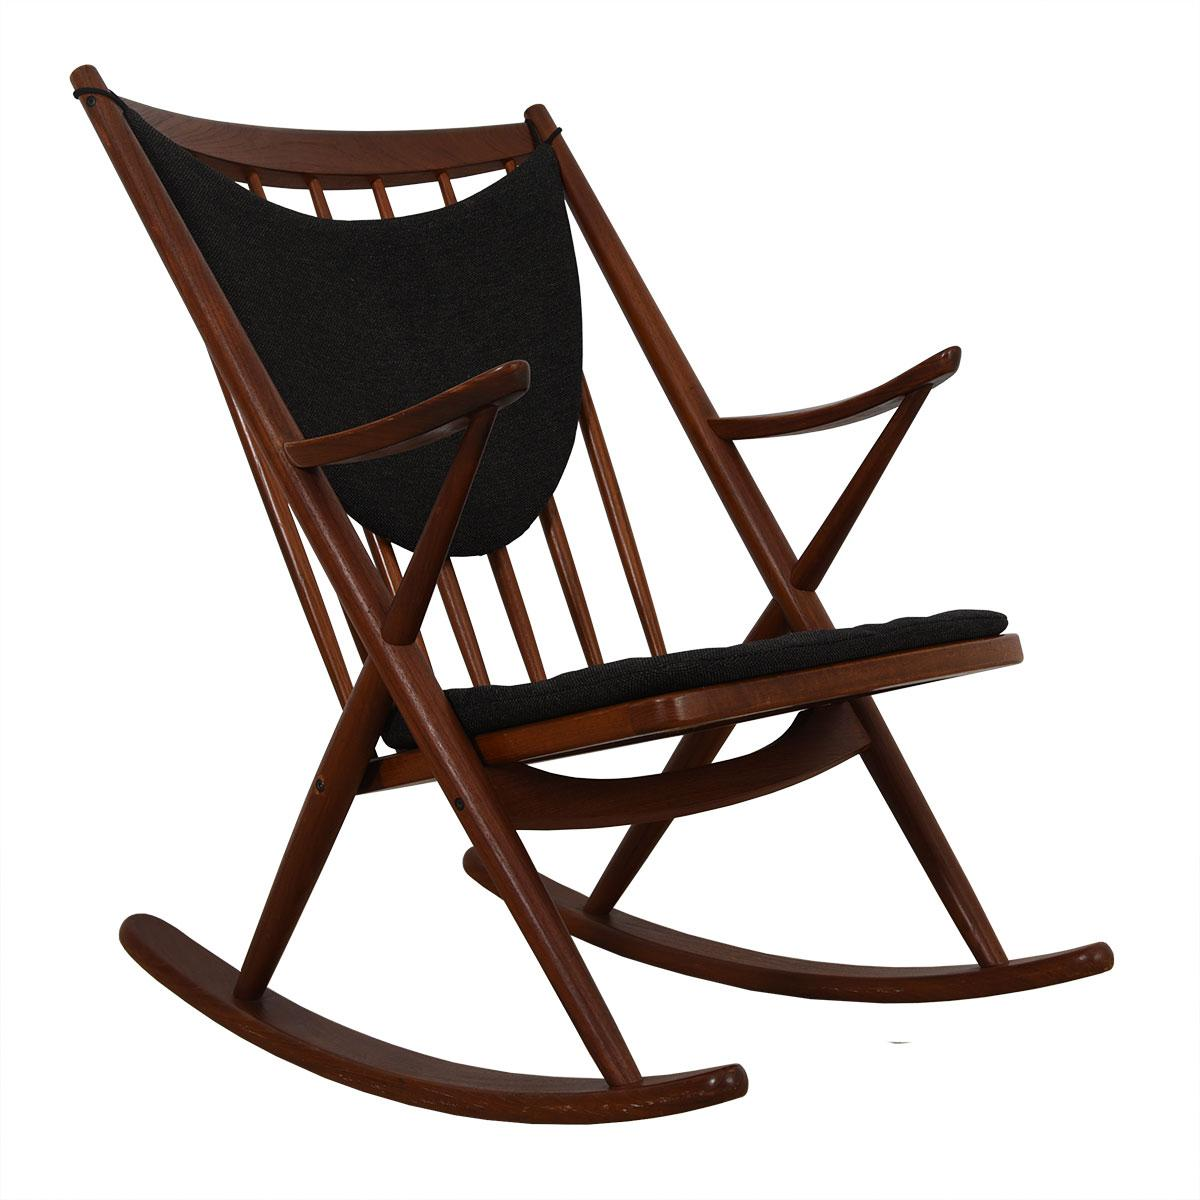 Merveilleux Danish Modern Rocking Chair In Teak By Bramin, Denmark   Image 11 Of 11